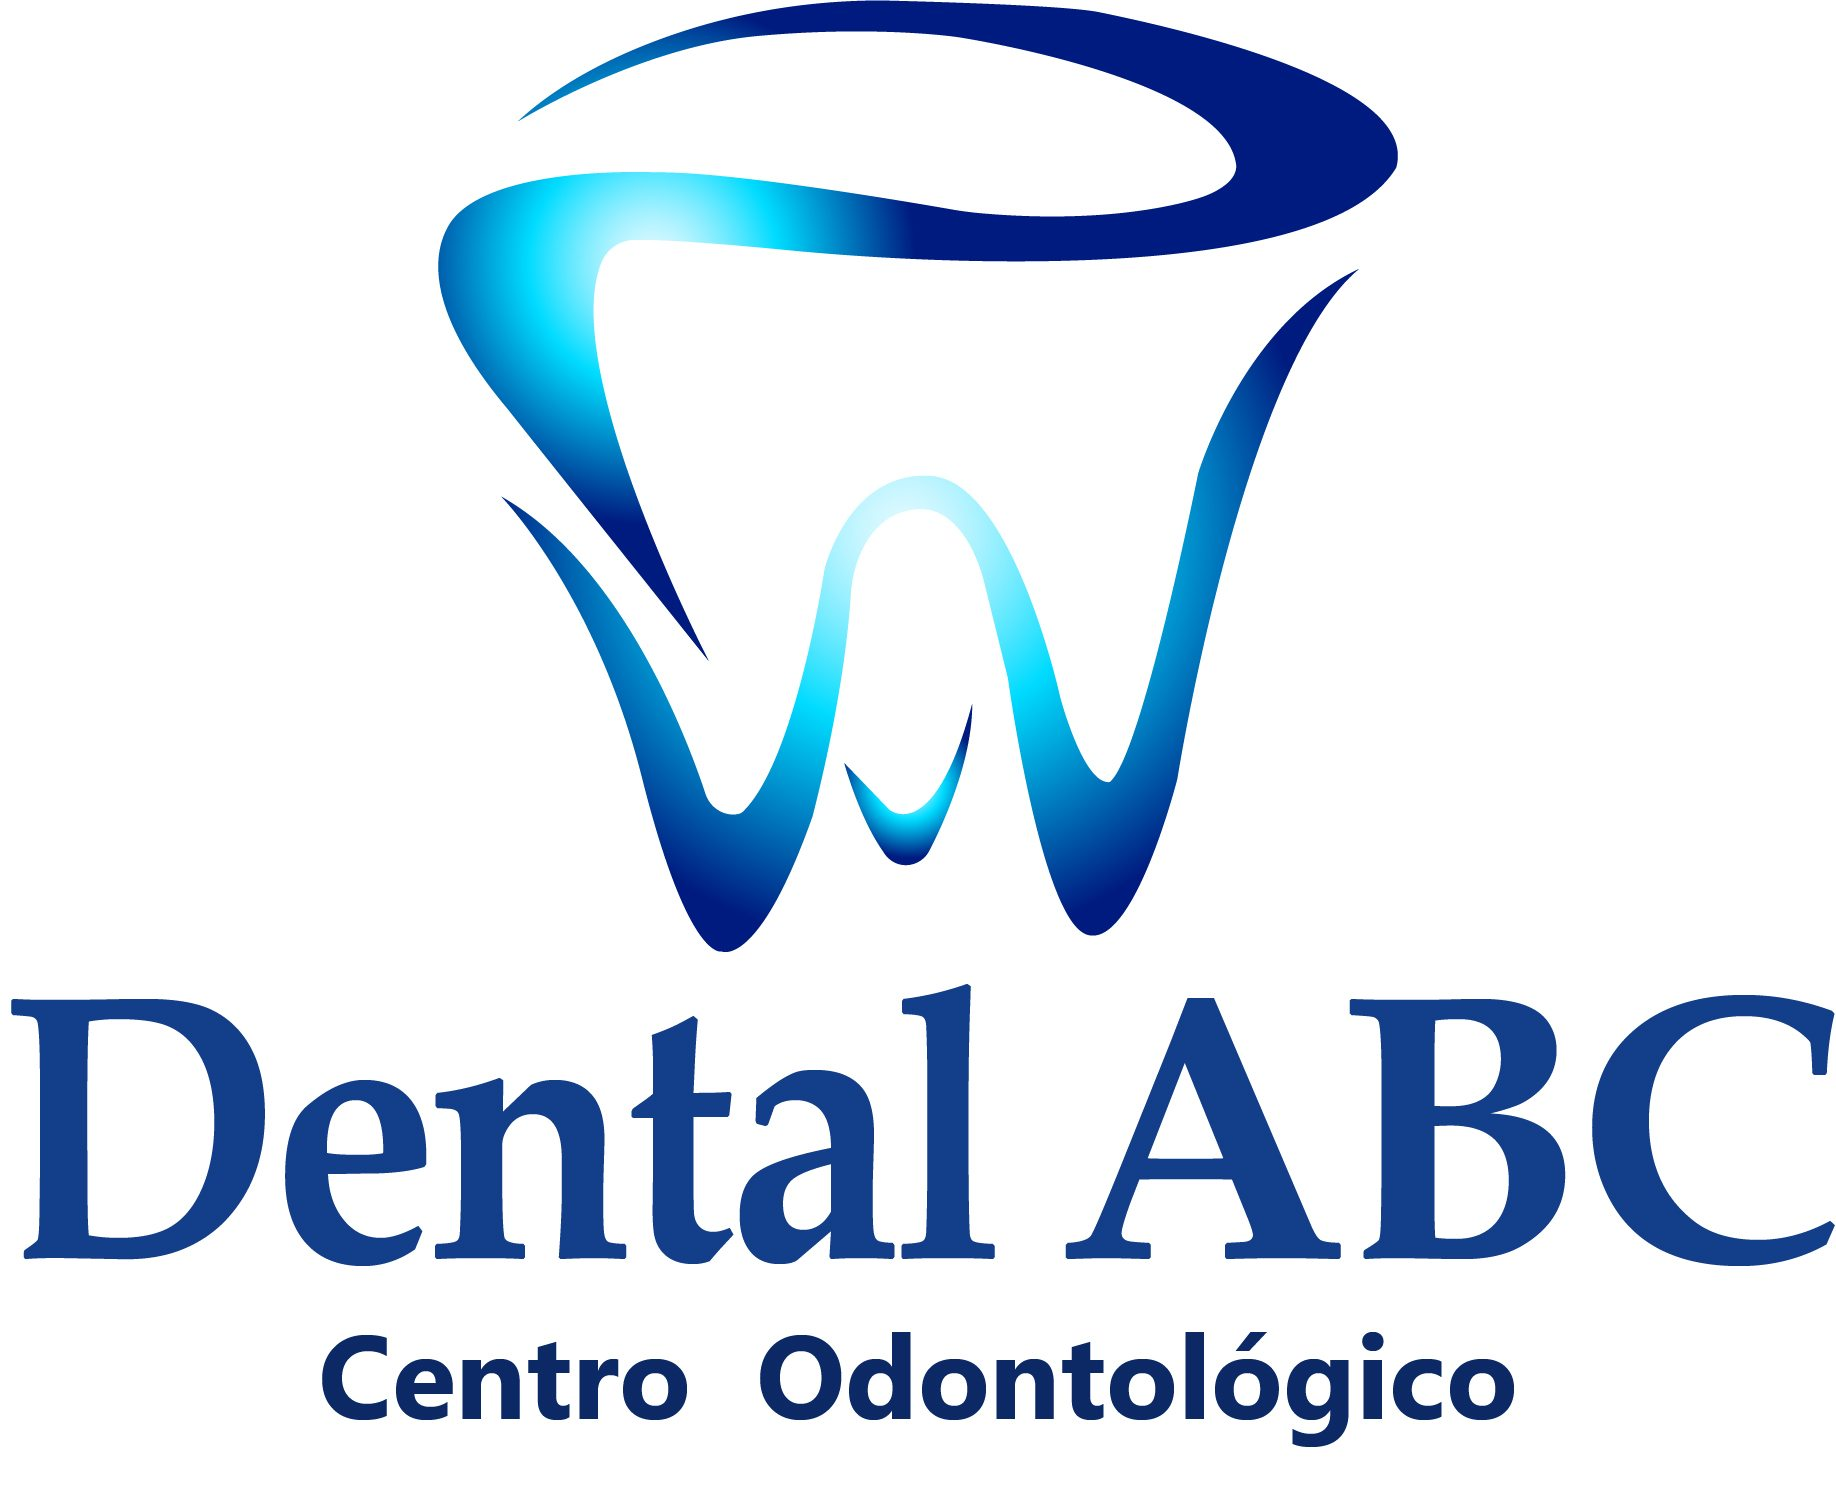 Dental ABC